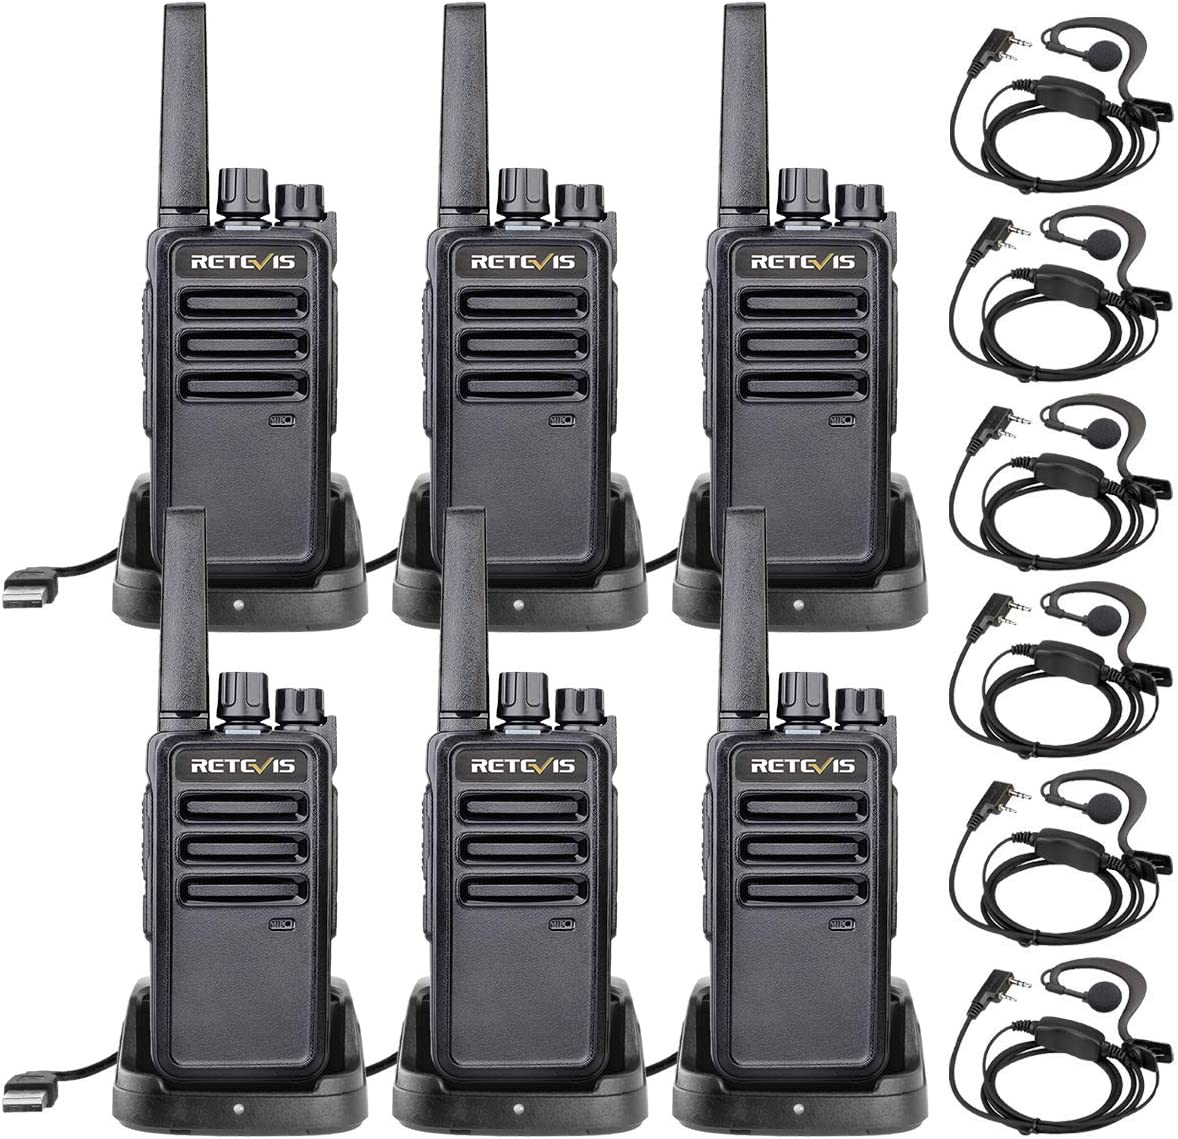 Retevis RT68 Walkie Talkies Adults Long Range,FRS Handsfree Small Rugged, Rechargeable Two Way Radio,2 Way Radios with Earpieces Business(6 Pack)